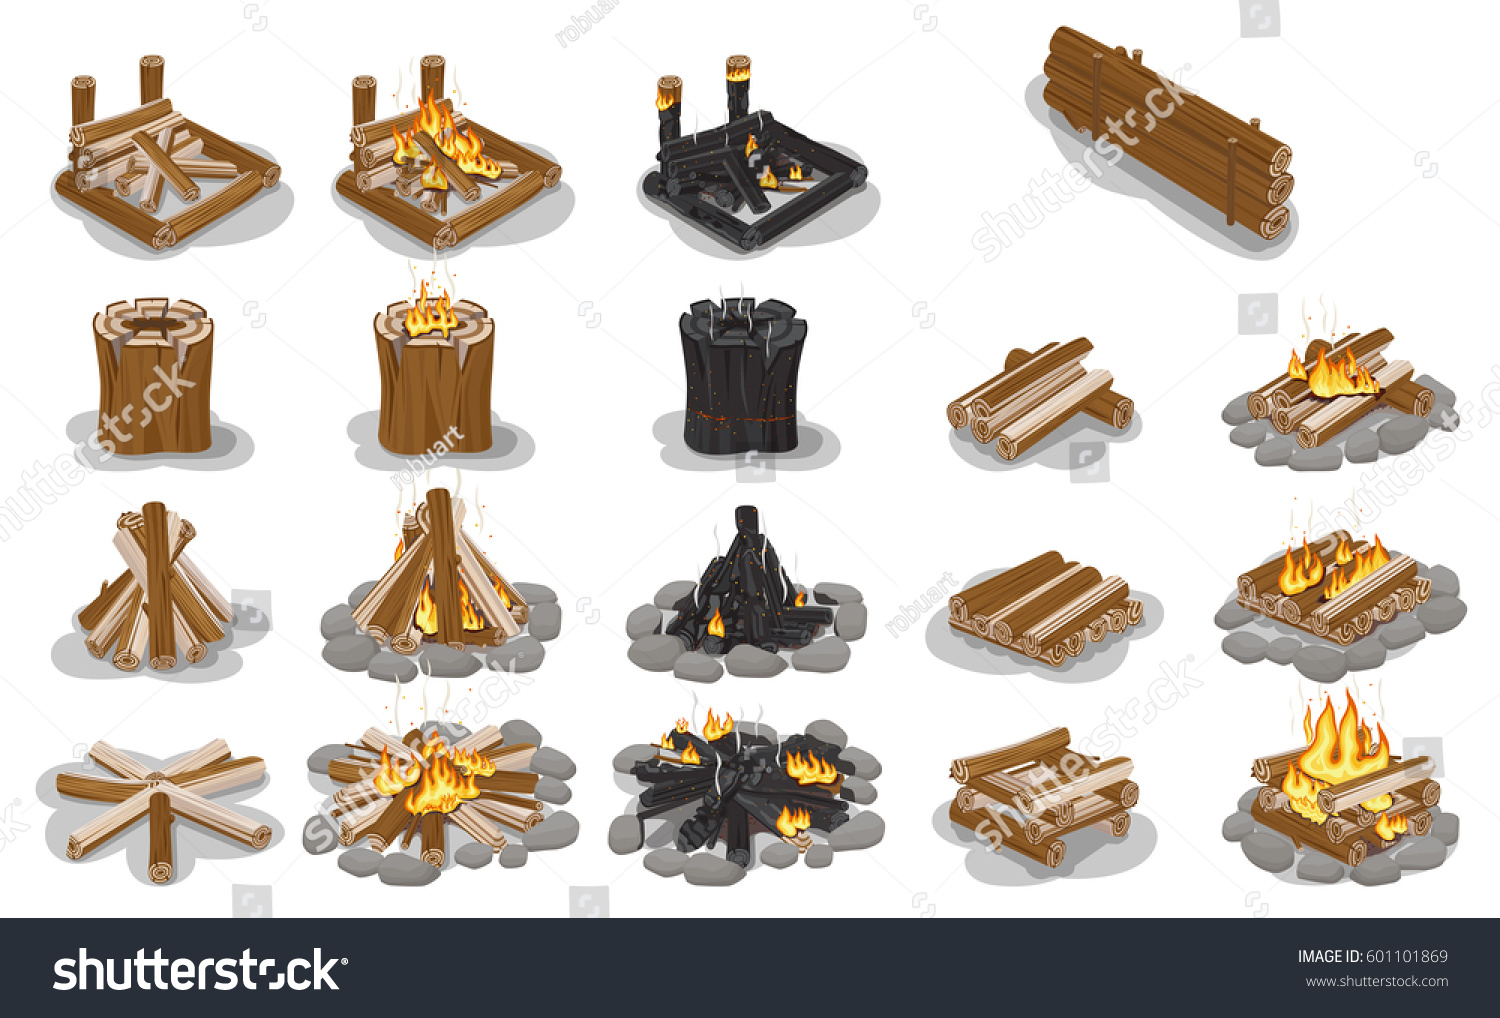 Tourist Campfire Types Collection Flame On Stock Vector (Royalty Free)  601101869